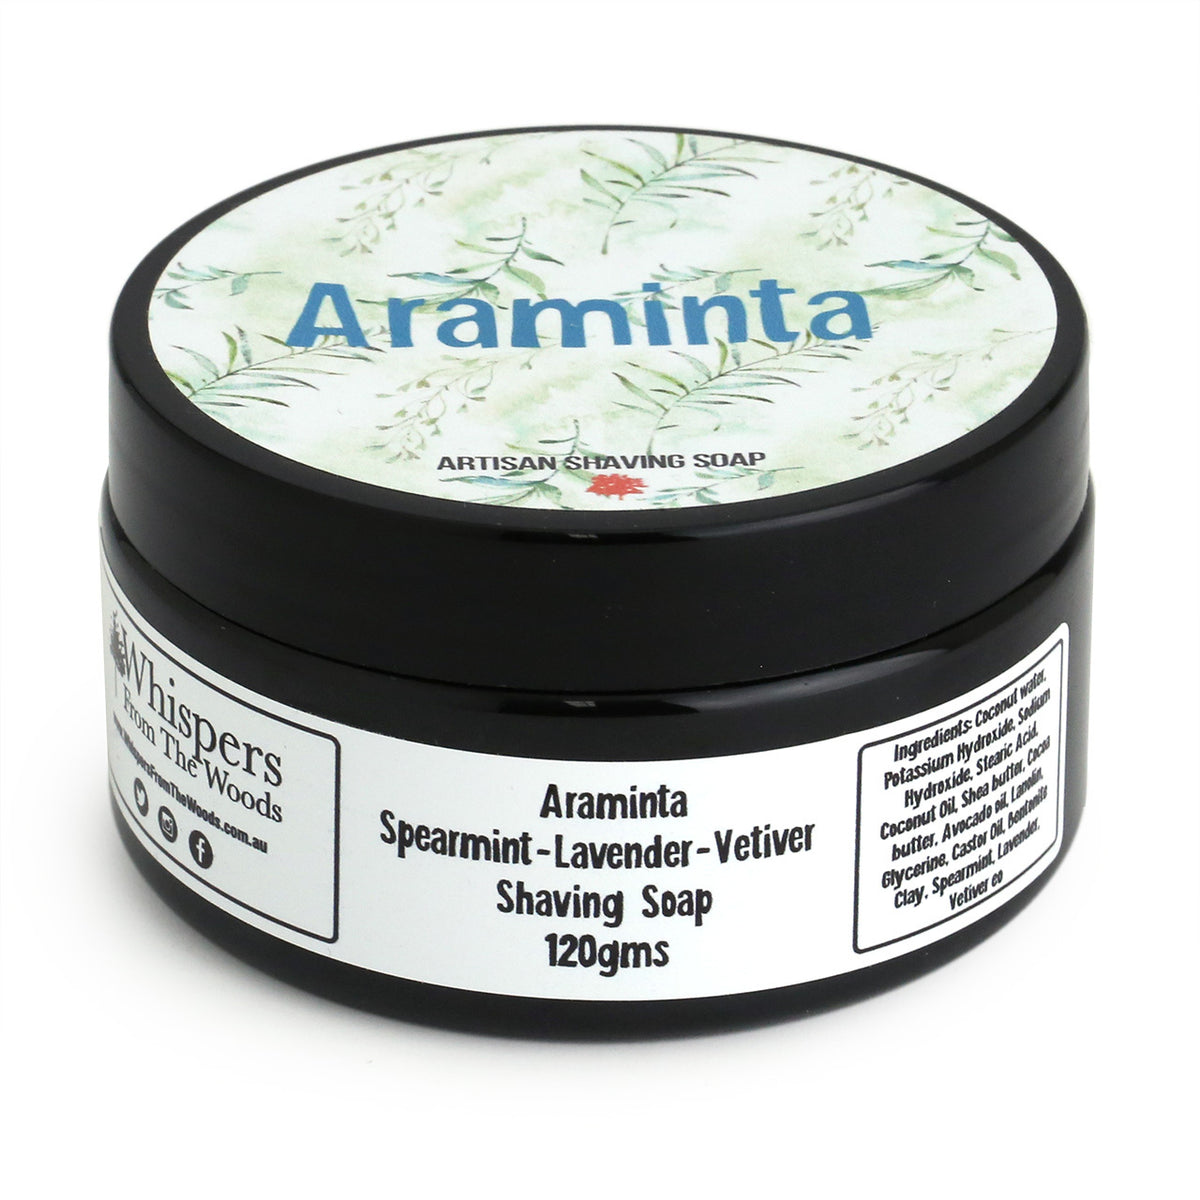 Whispers from the Woods Shaving Soap - Araminta